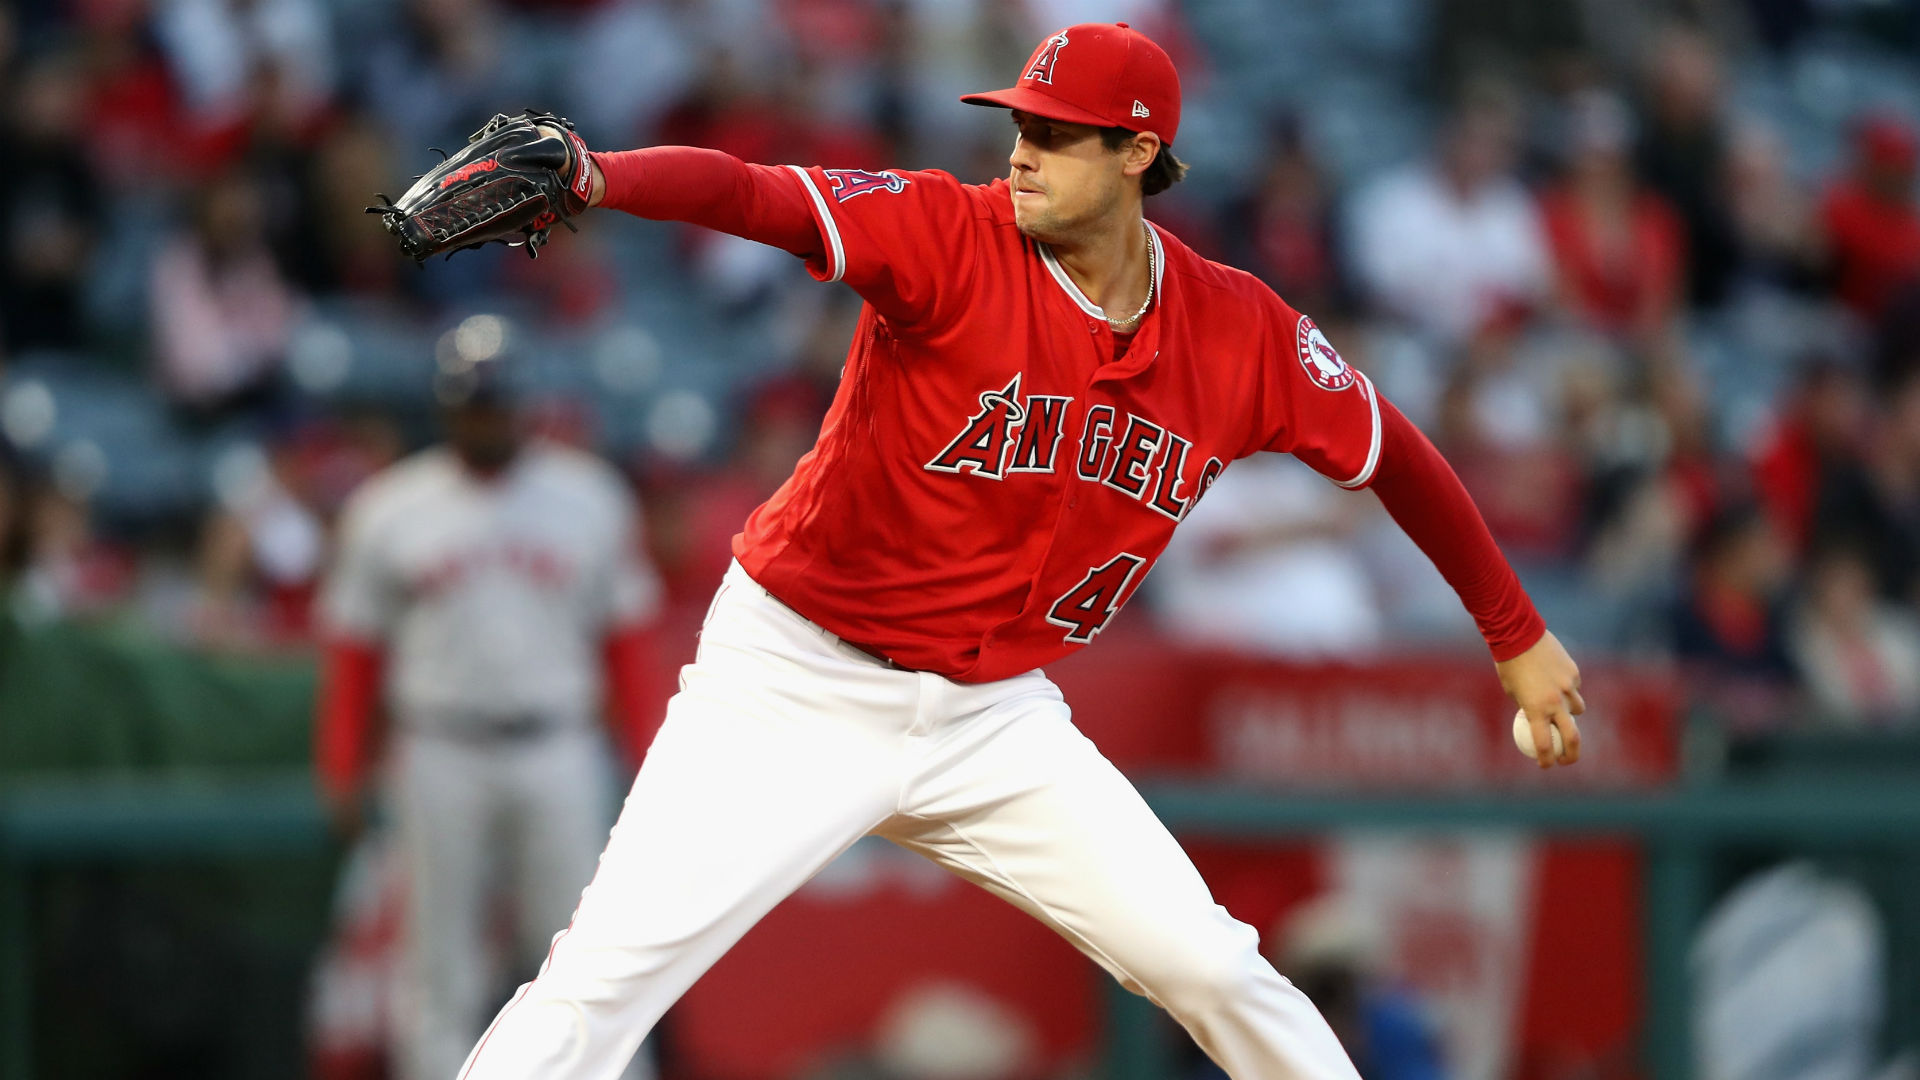 Los Angeles Angels, 4-22-2018 - Expert Prediction